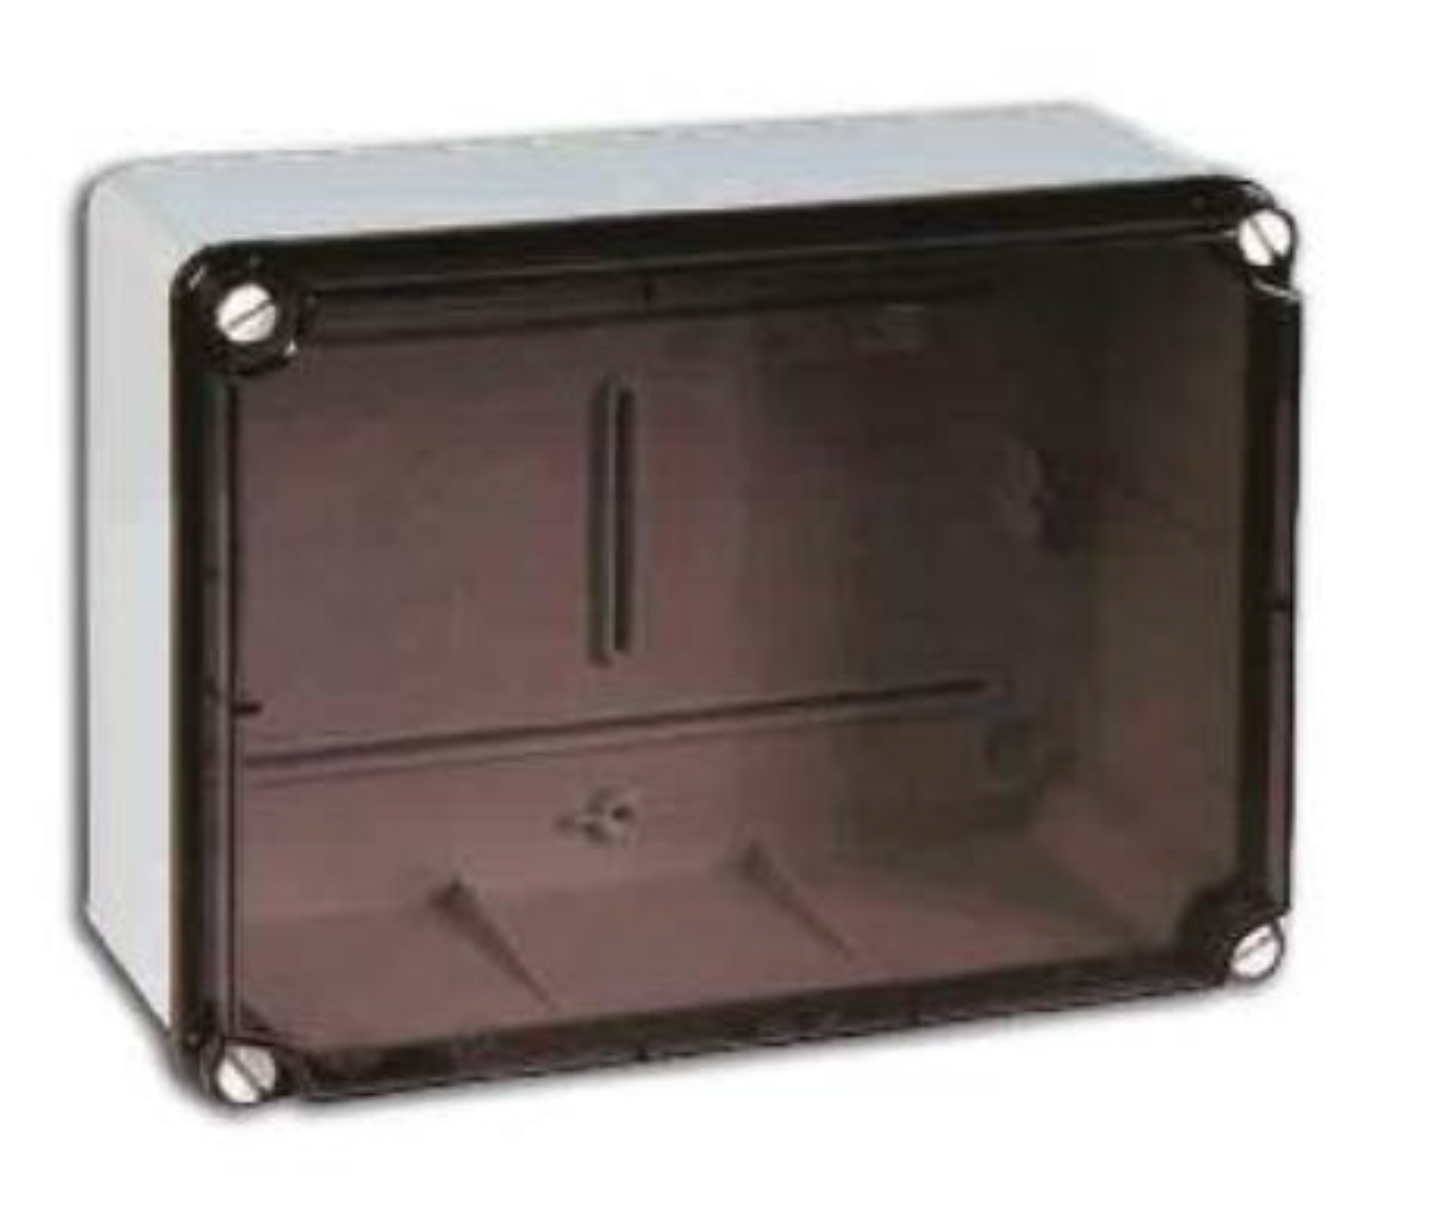 Hellerman AS45T Junction Box 240x190x90